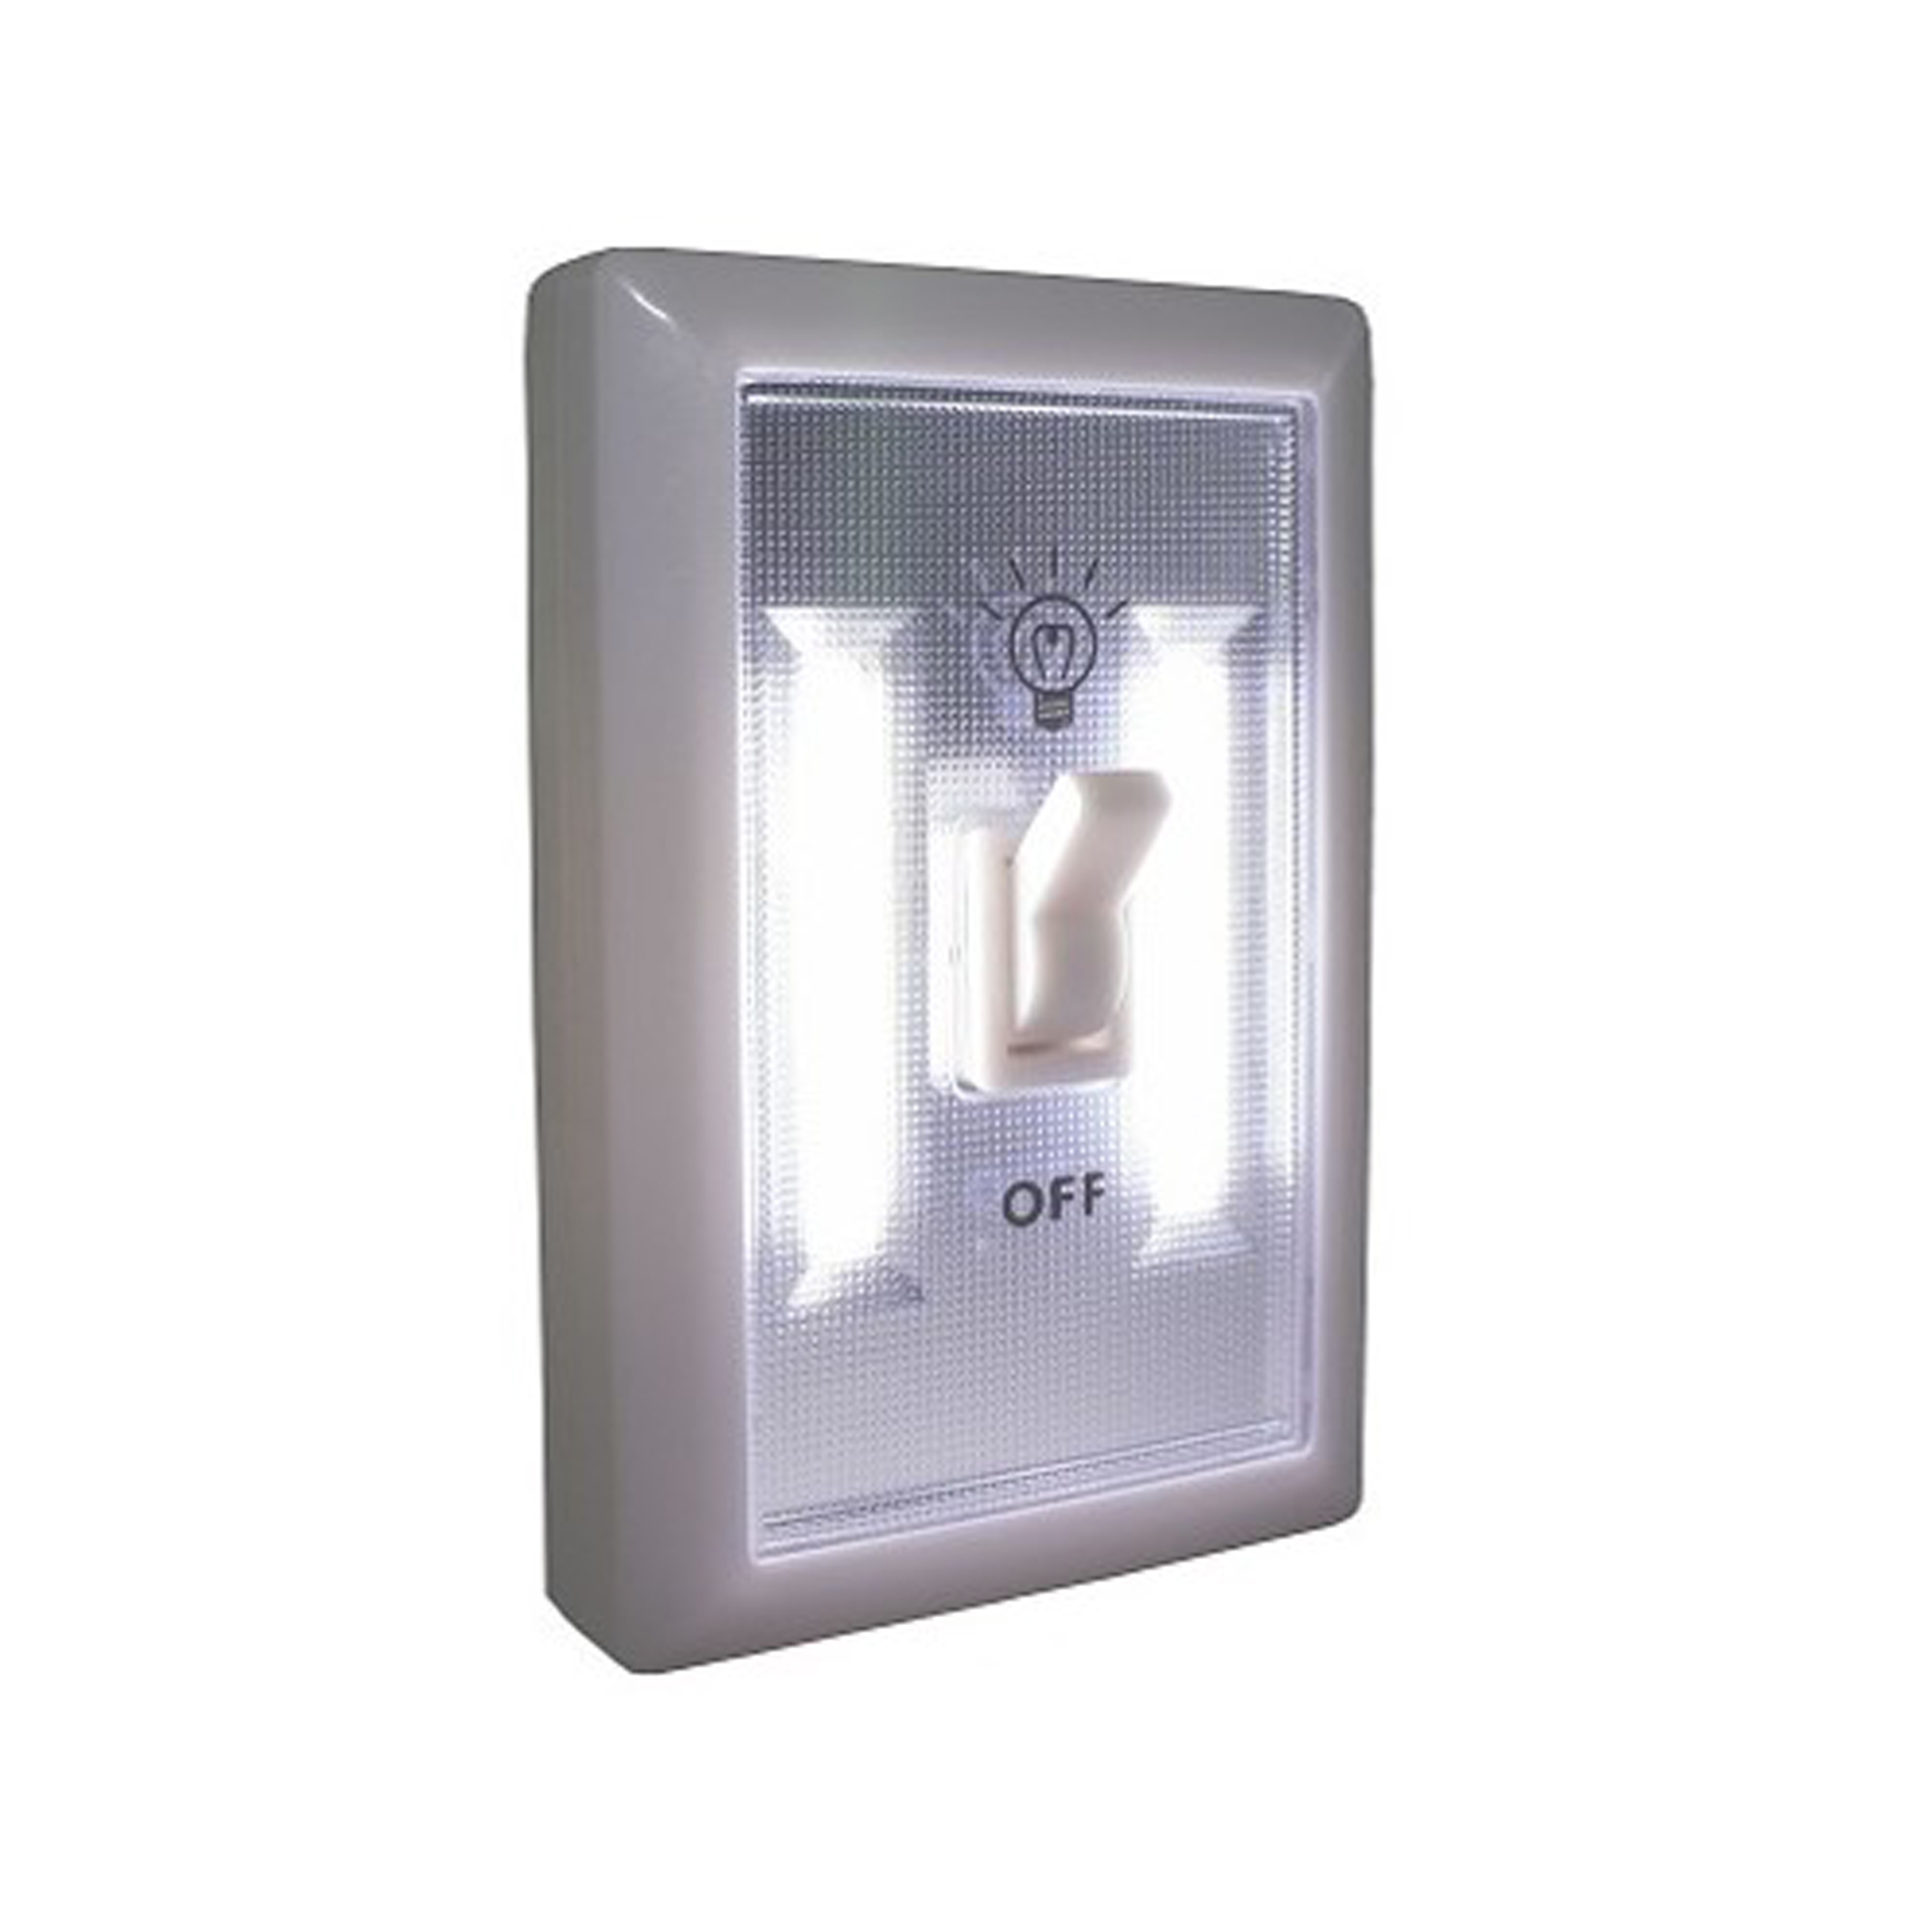 iag-cordless-light-switch-front